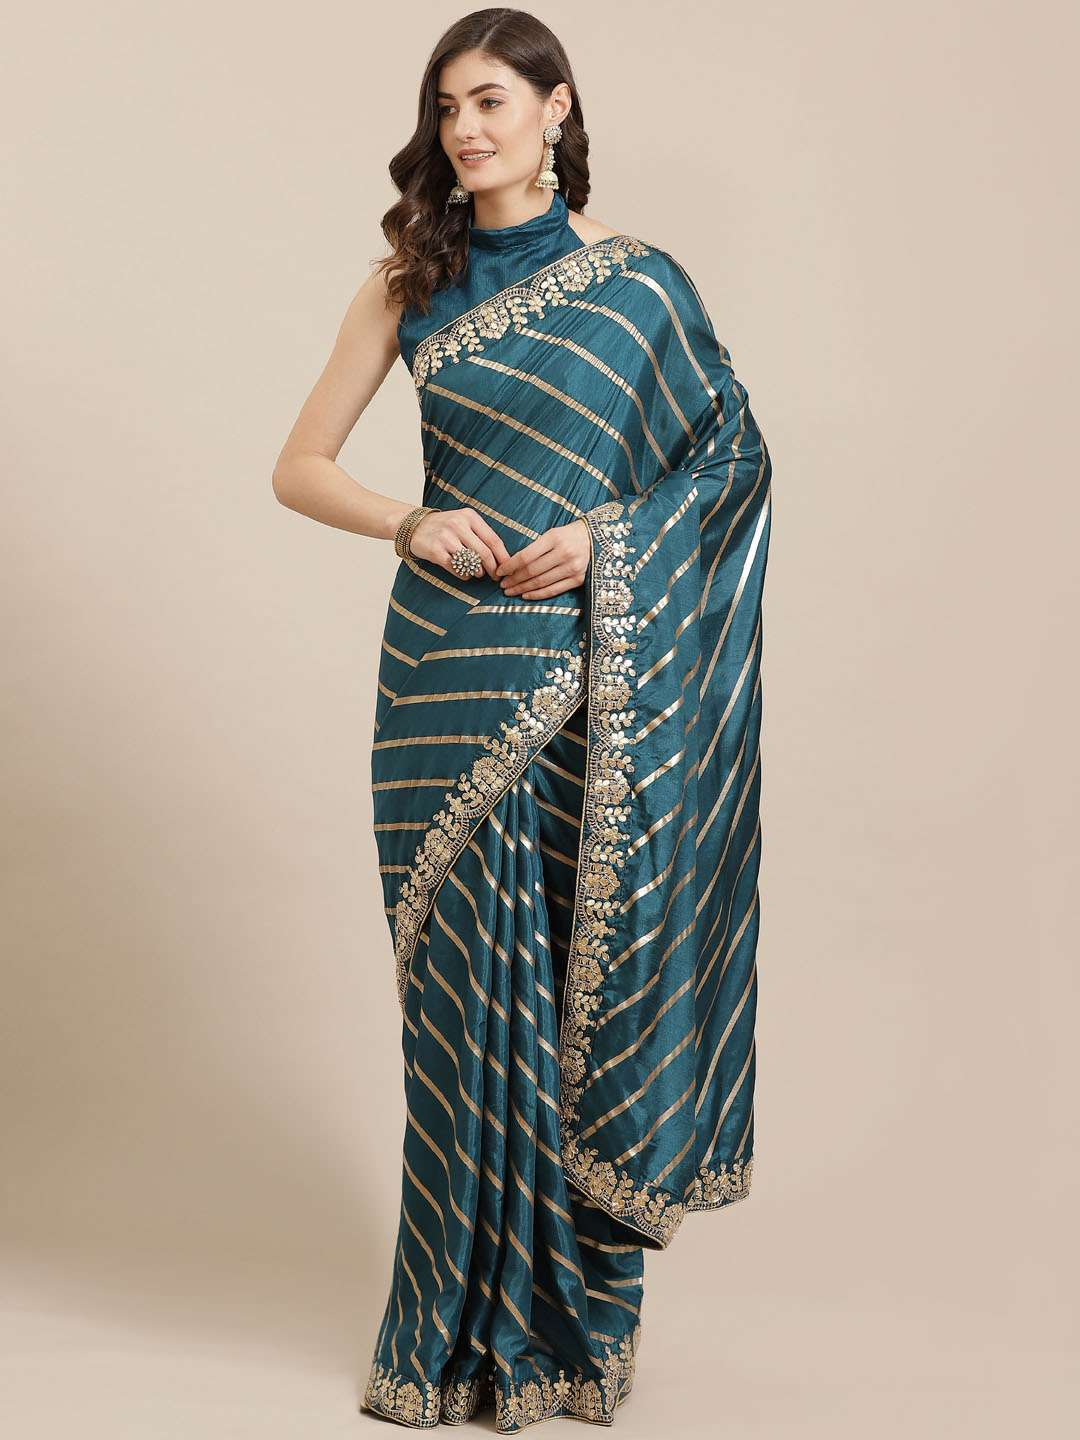 EXCLUSIVE PARTY WEAR SILK SAREES BOUTIQUE STYLE SAREES COLLECTION 14